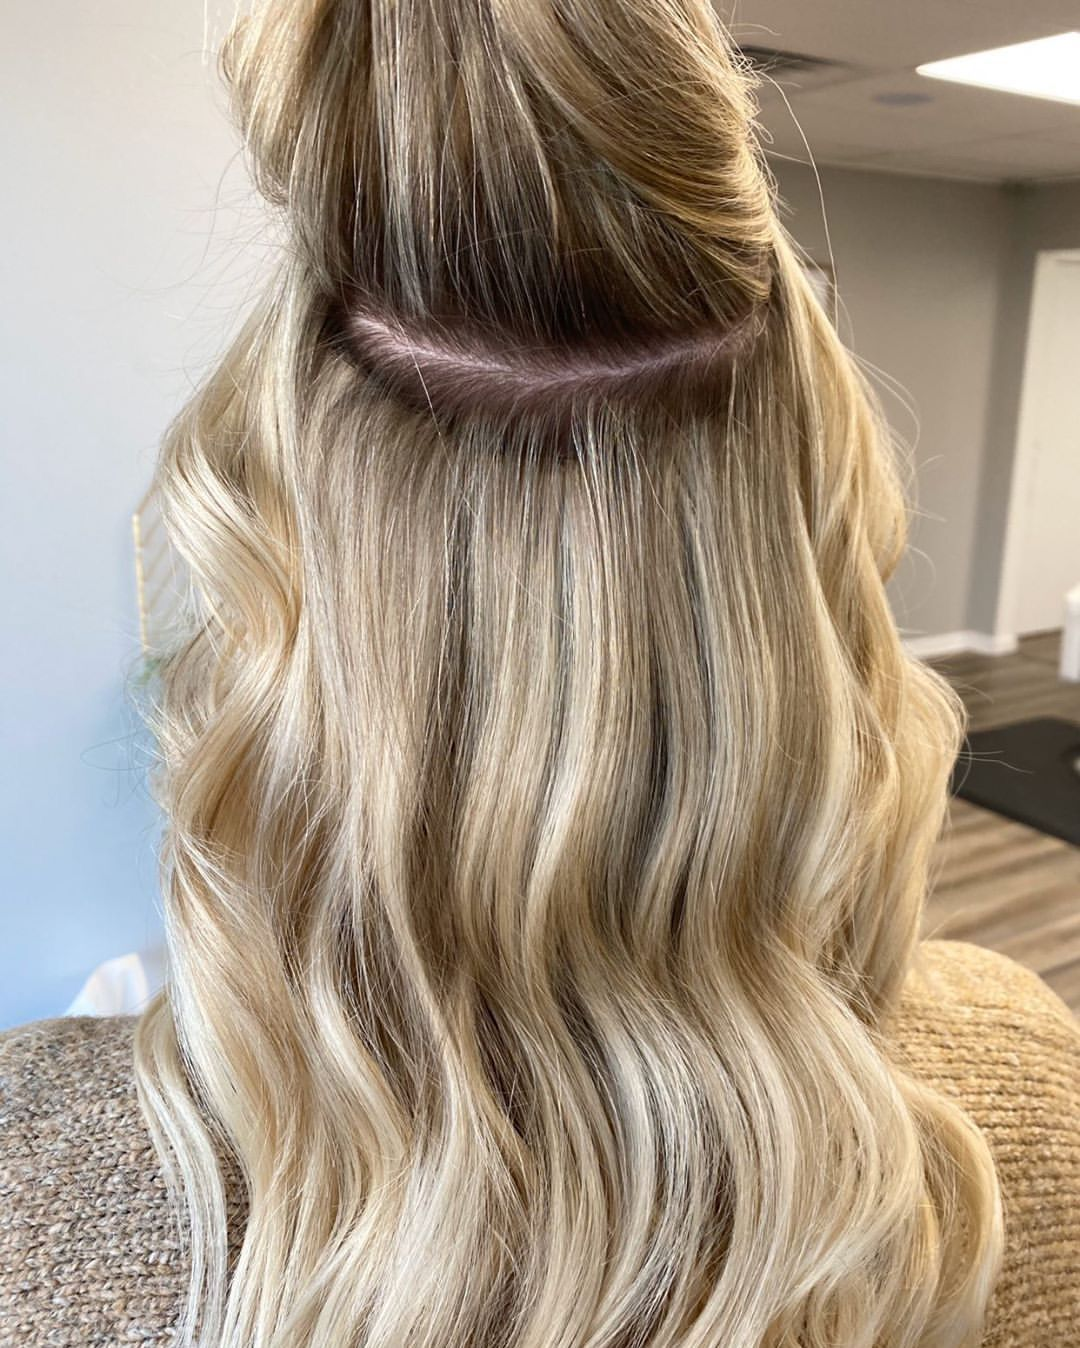 Hotheads Hair Extensions In 2020 Hot Heads Hair Extensions Pretty Hairstyles Hair Color Highlights